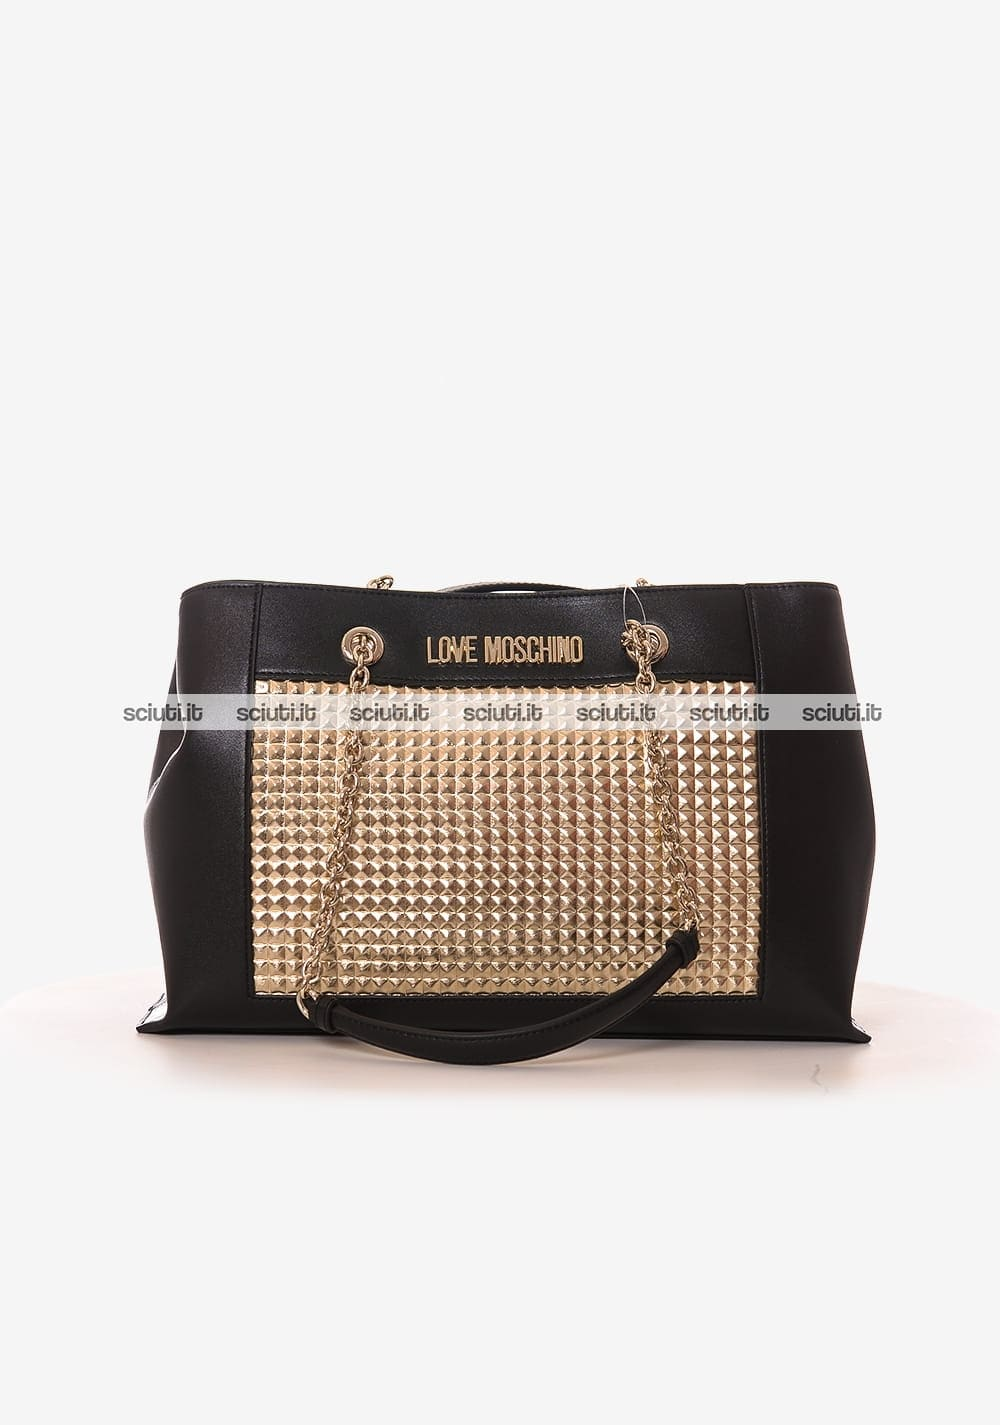 Borsa shopping Love Moschino donna nera laminata